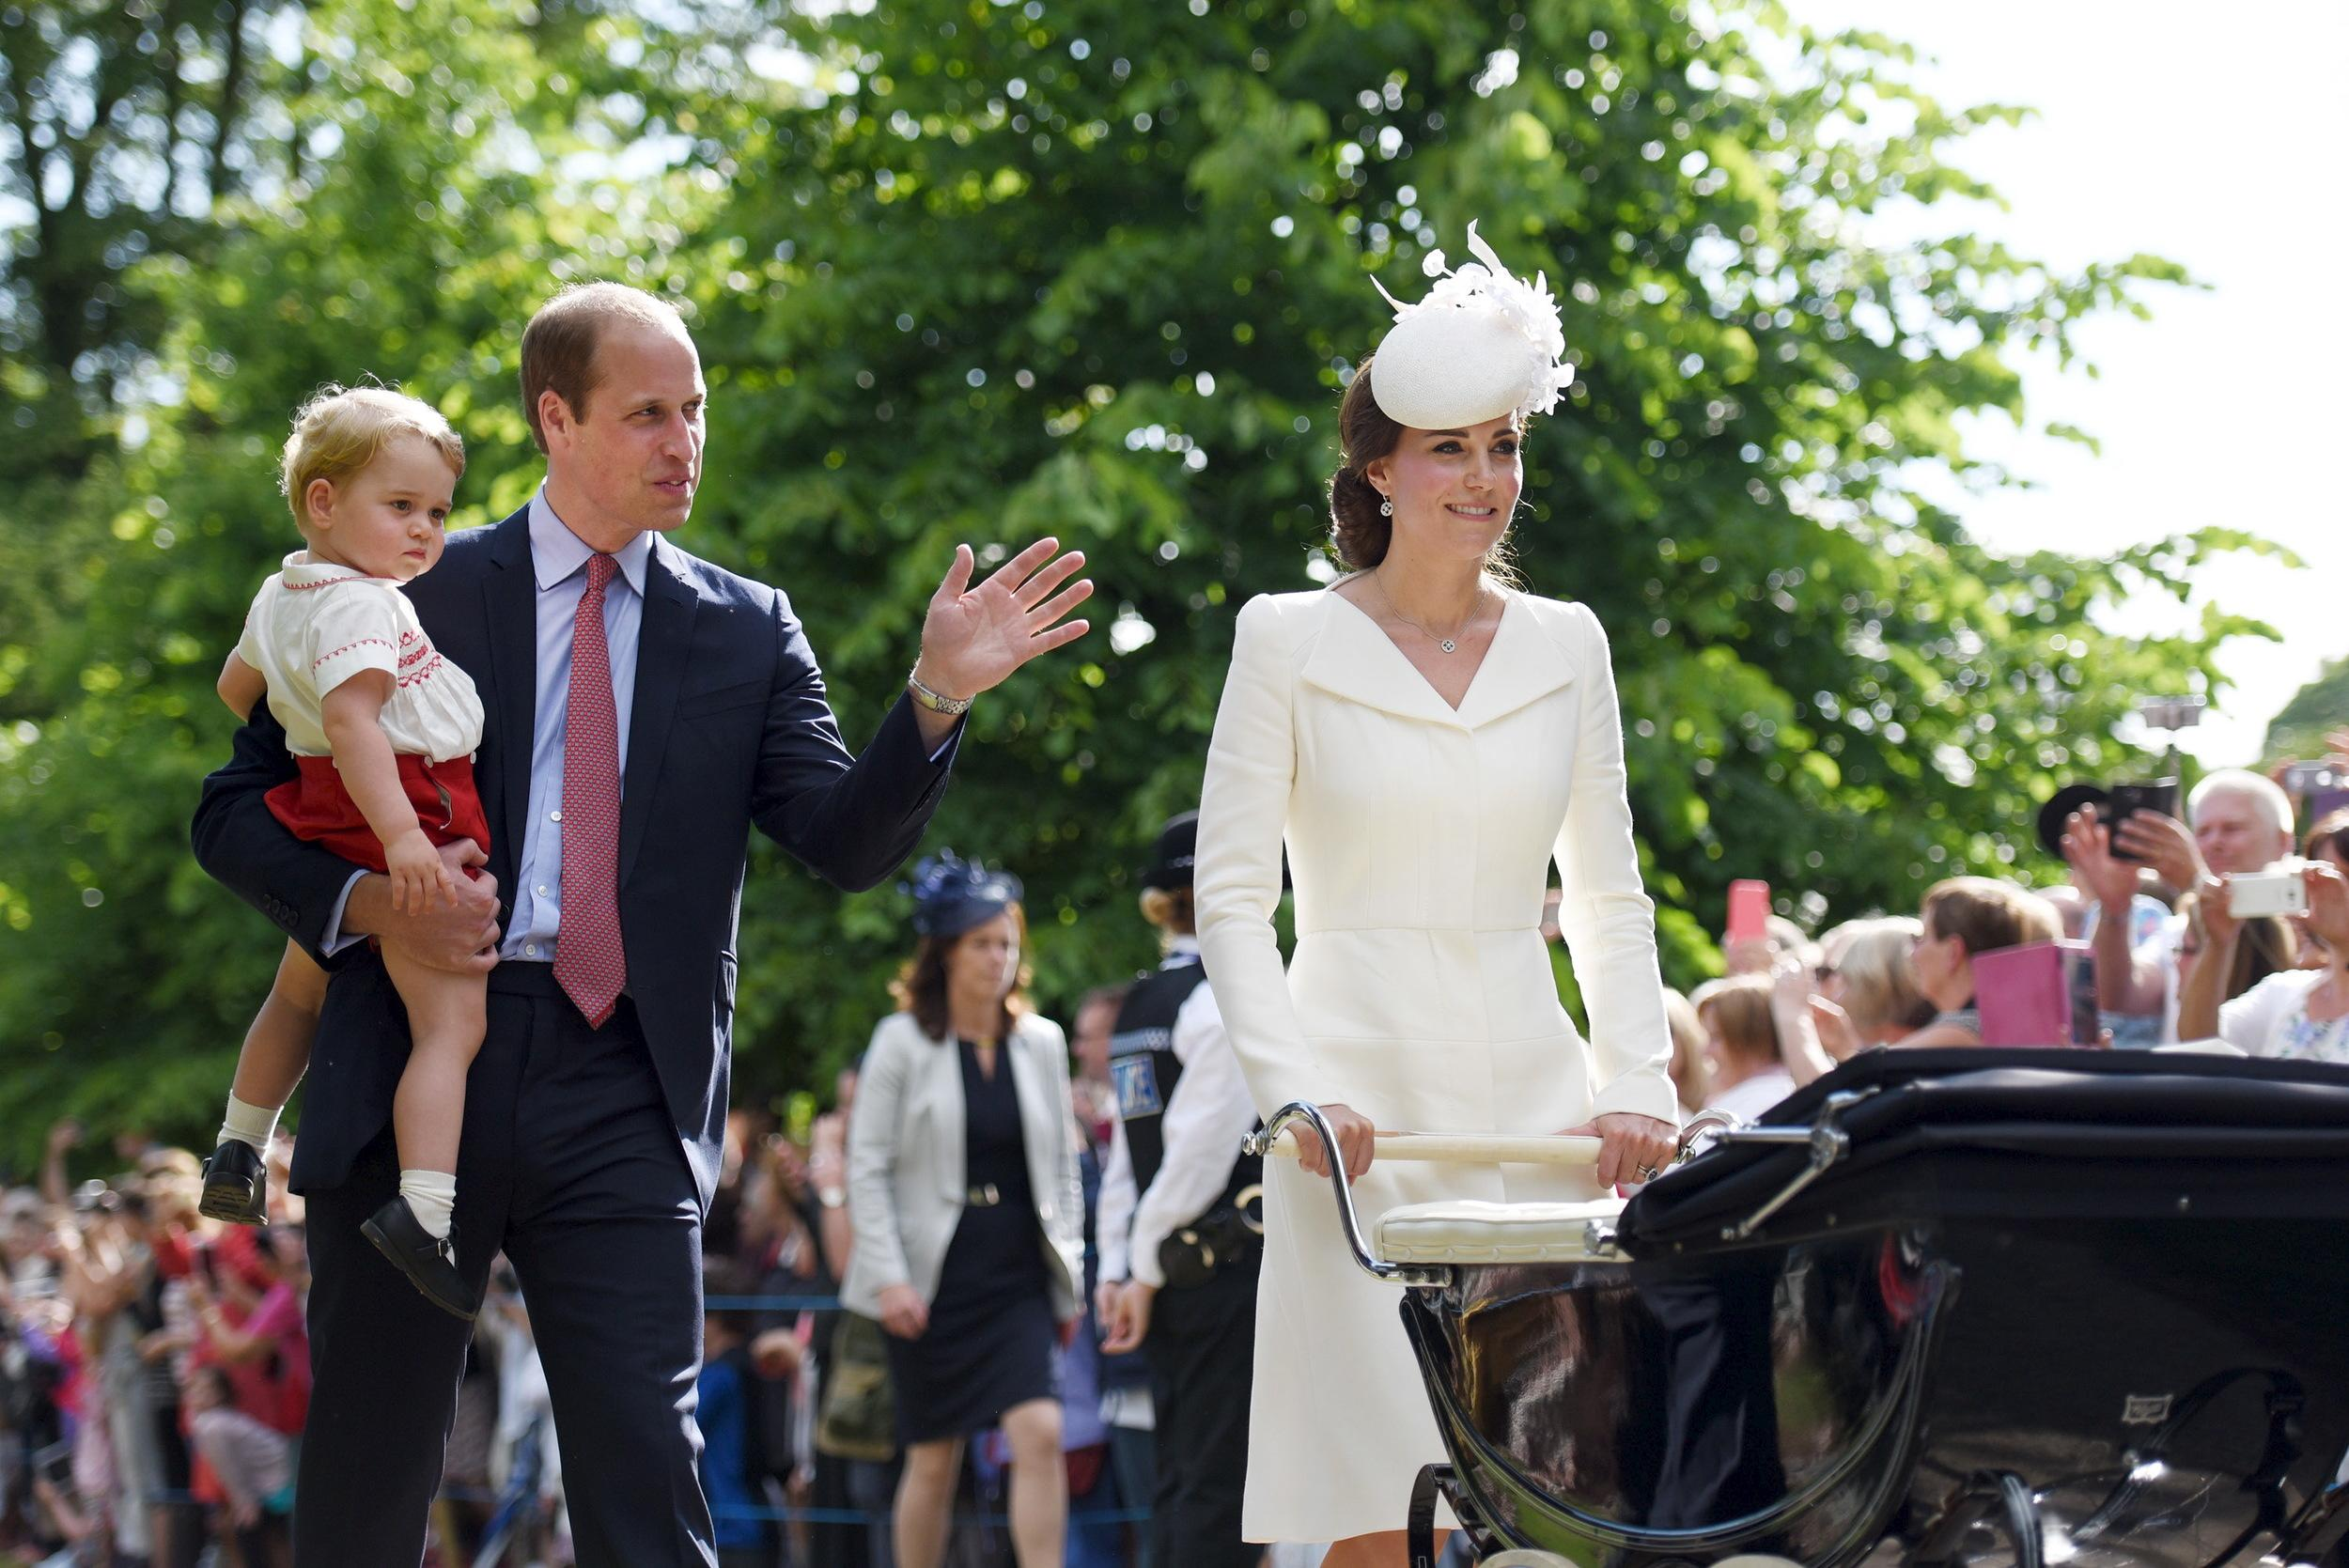 The Duke and Duchess of Cambridge walk past the crowds at the Church of St Mary Magdalene on the Sandringham Estate with their son Prince George and daughter Princess Charlotte, after her christening, on July 5th 2015. REUTERS/Mary Turner/Pool